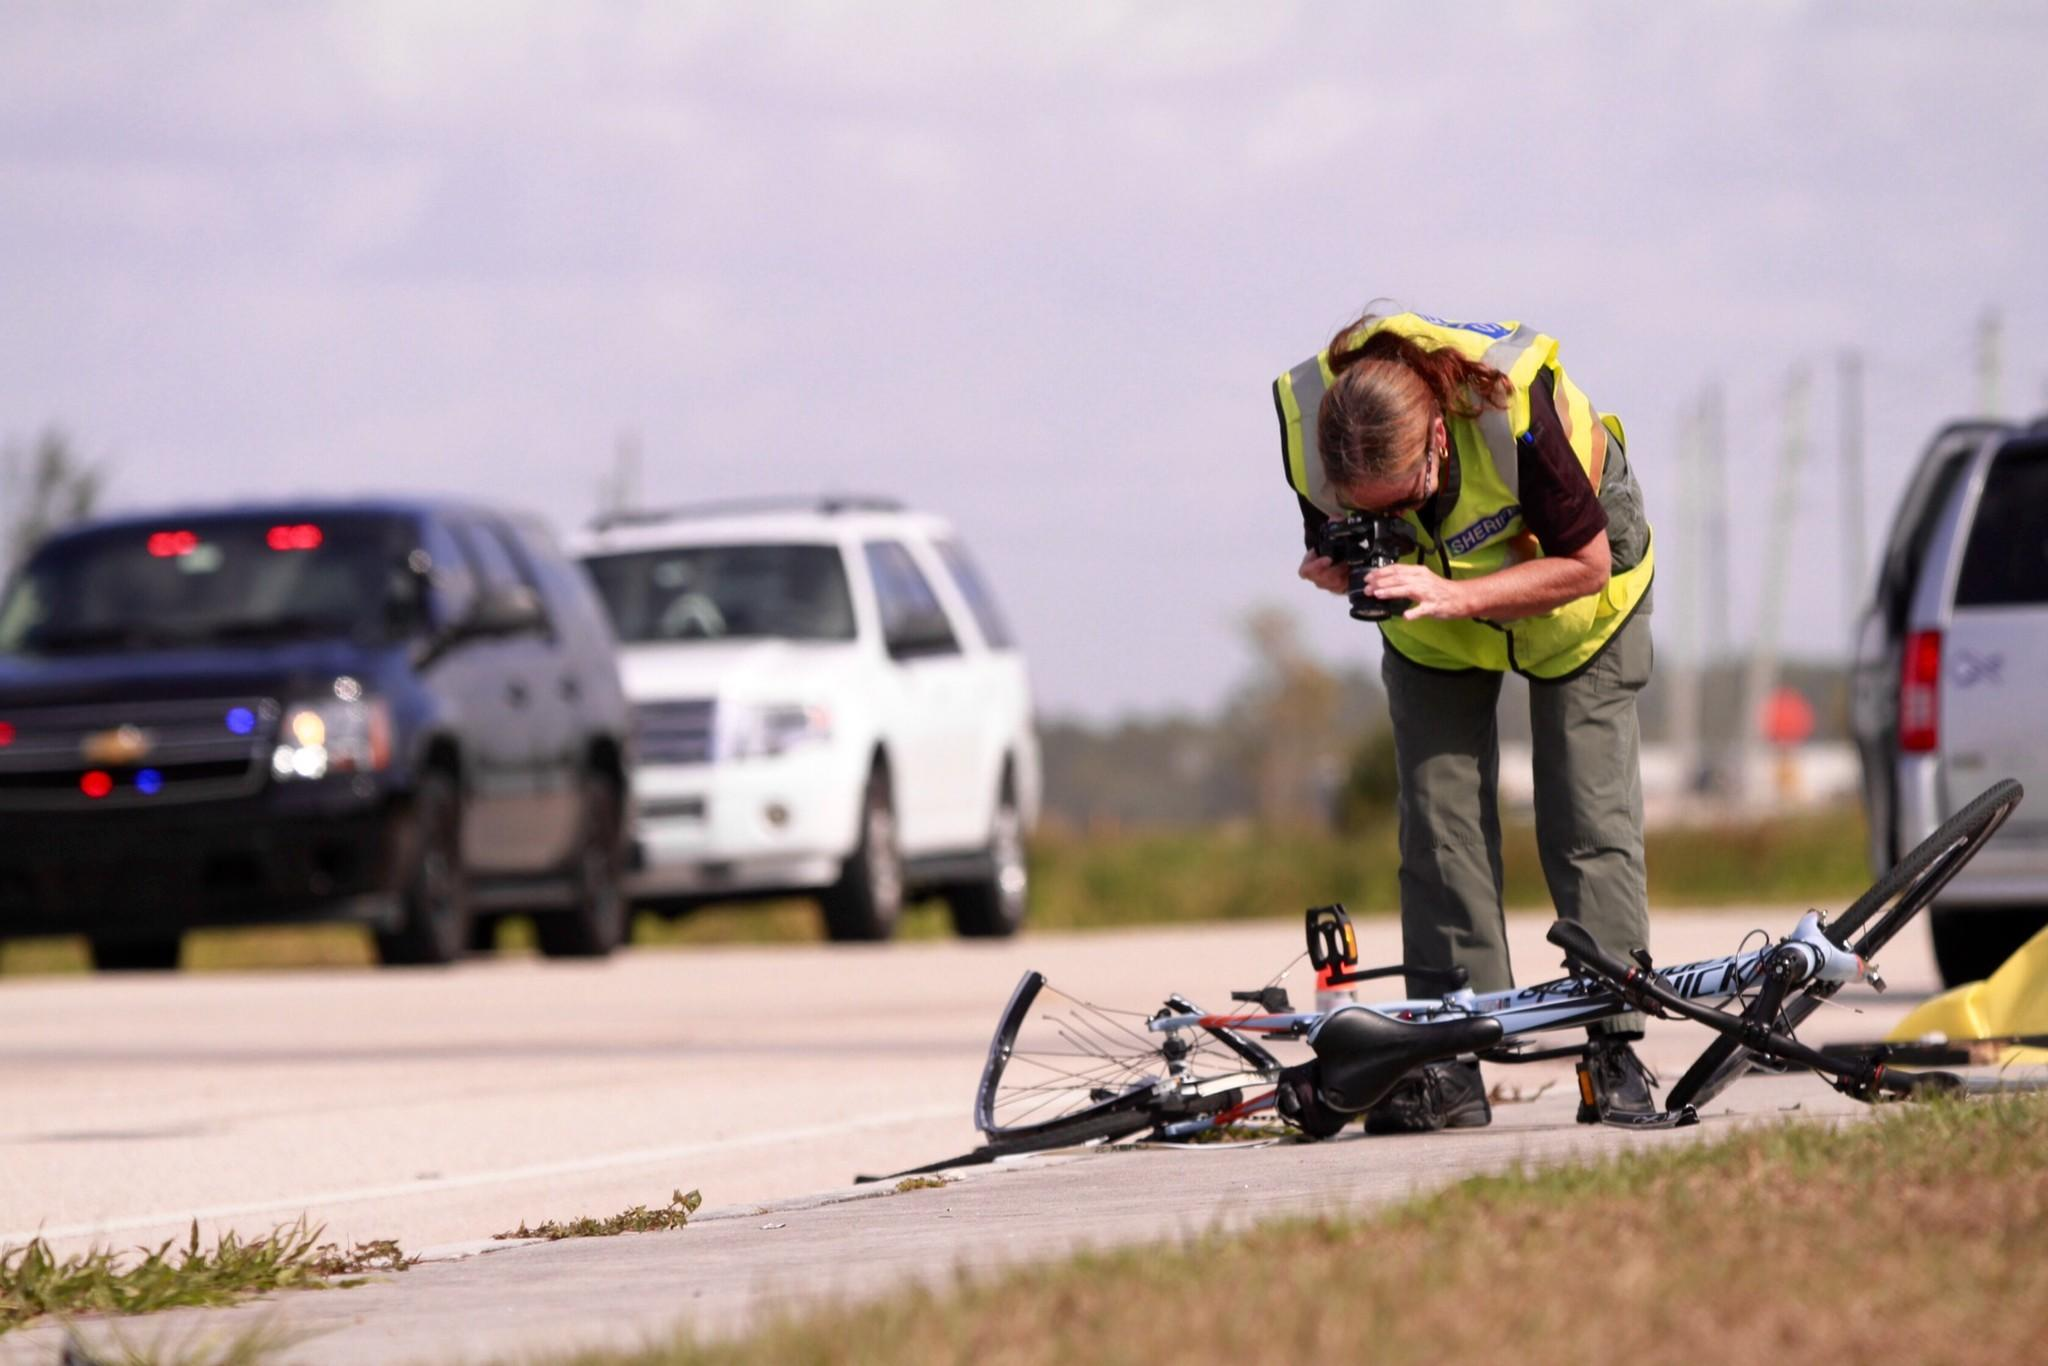 A Palm Beach County Sheriff's Office crime scene investigator photographs a bicycle at the scene of a fatal vehicle vs. bicycle crash on Lyons Road north of Clint Moore Road on Wednesday.